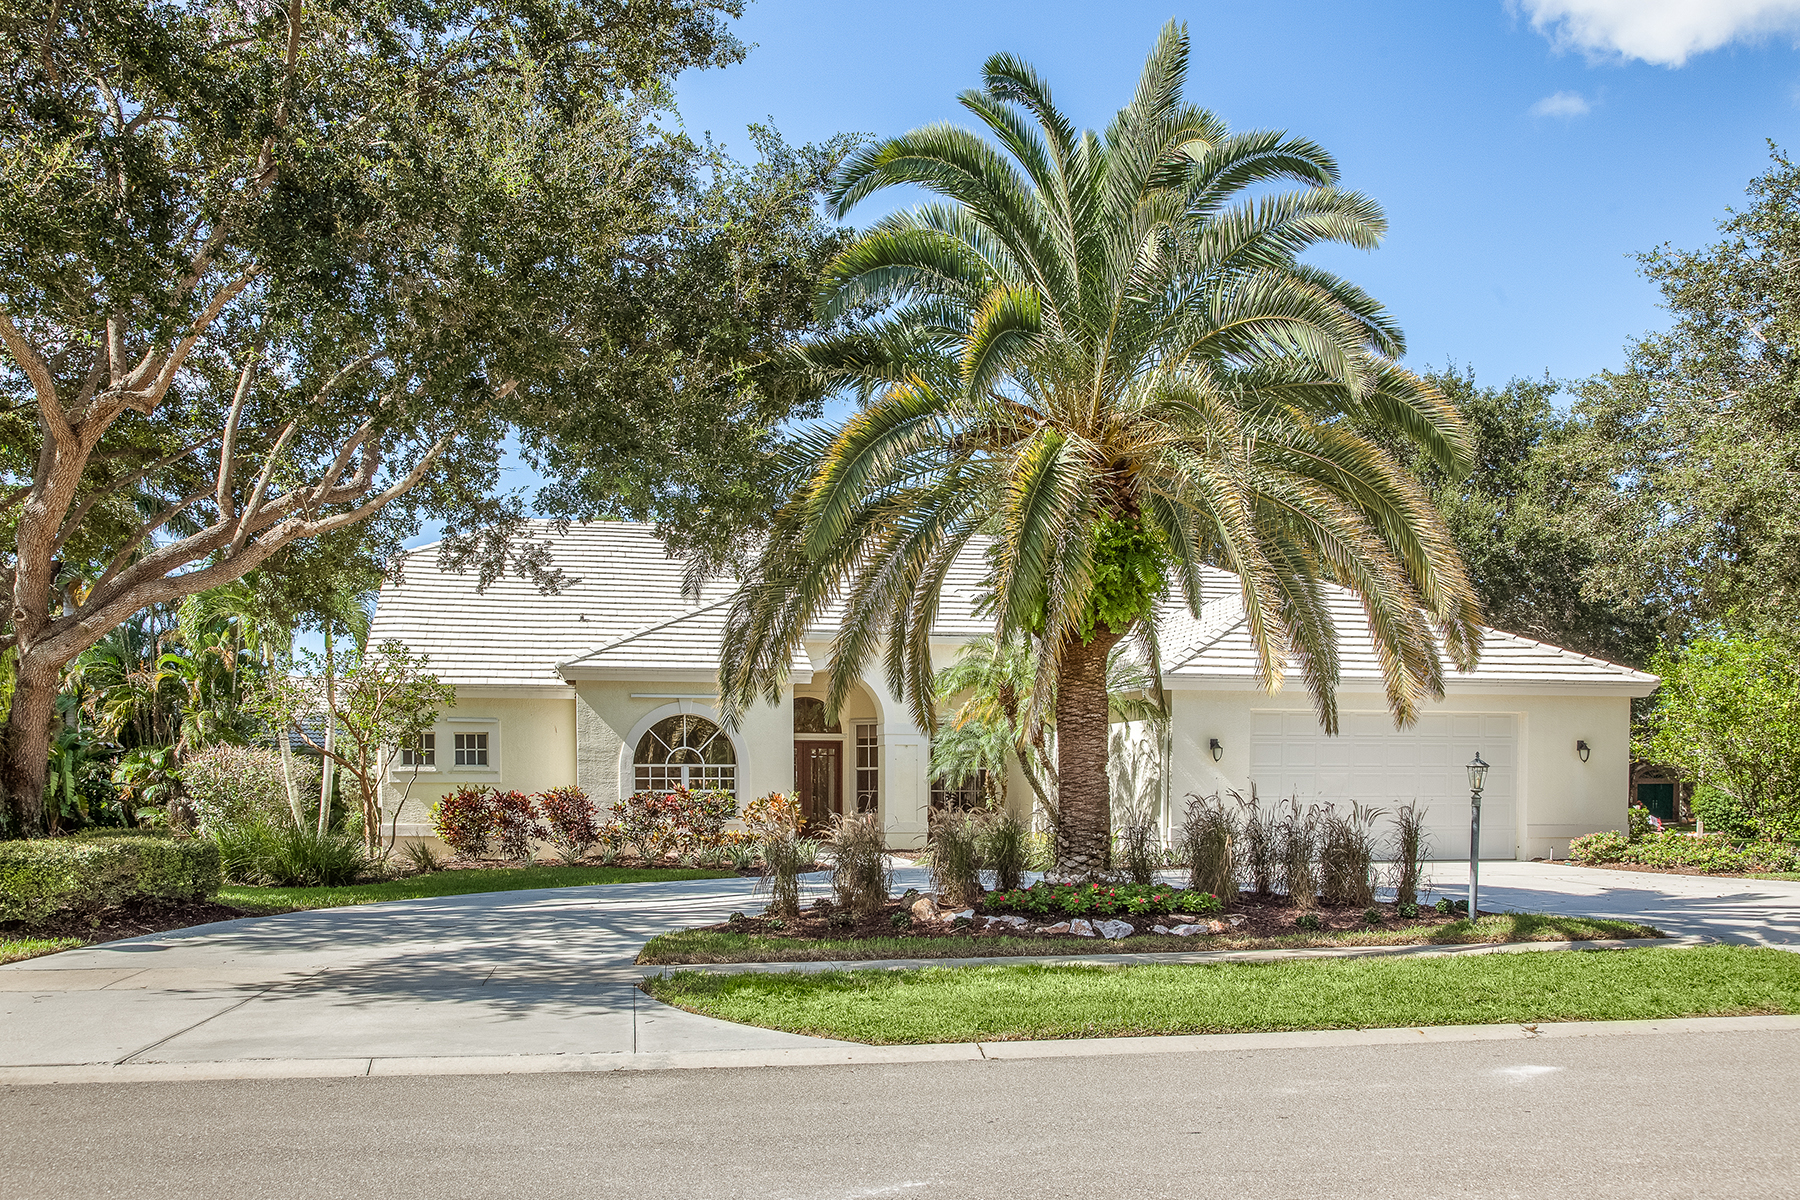 Single Family Home for Sale at MONTEREY 2119 Mission Dr Naples, Florida, 34109 United States